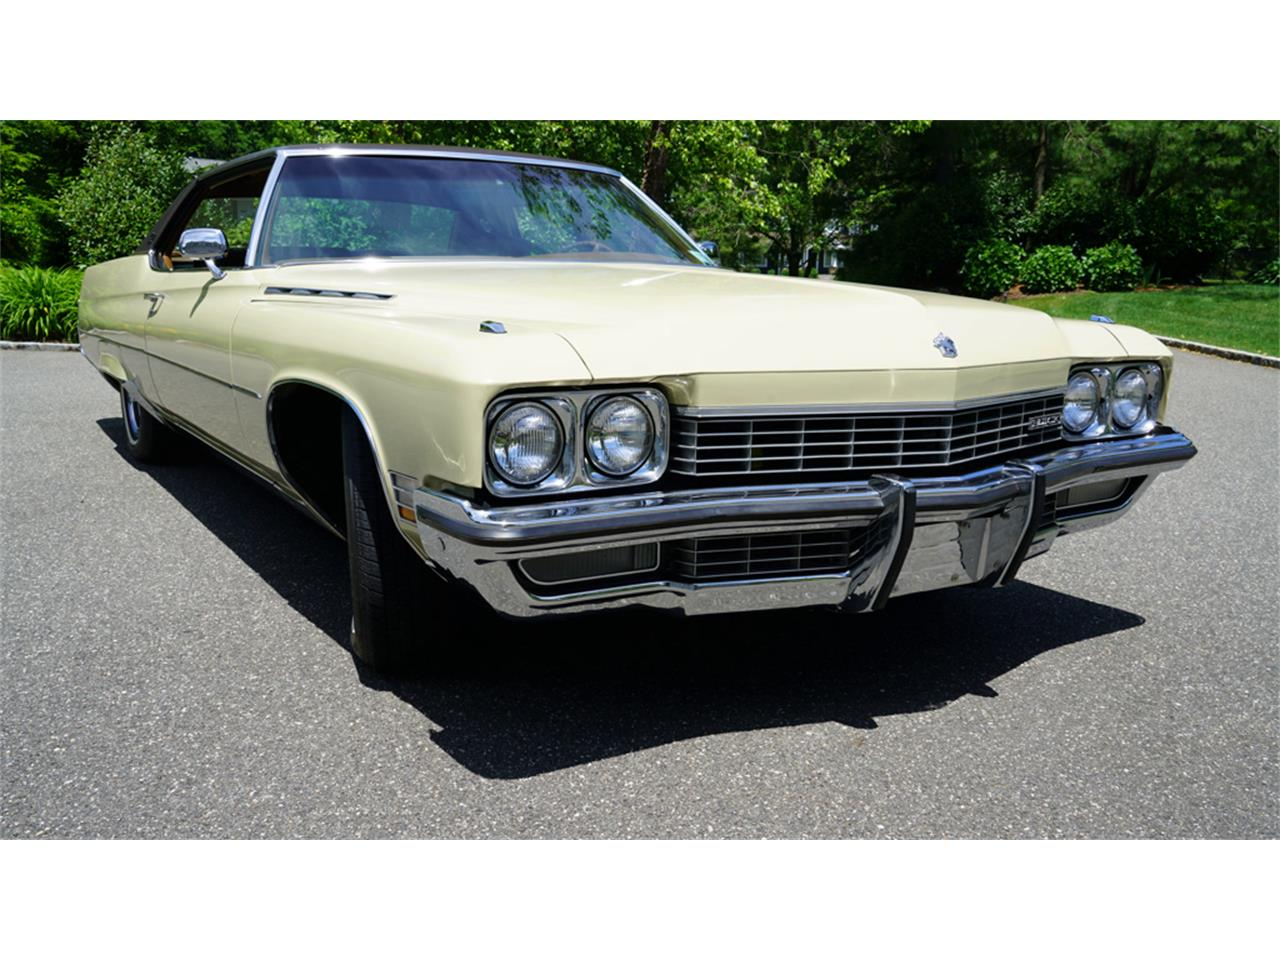 1972 Buick Electra 225 (CC-1226714) for sale in Old Bethpage, New York